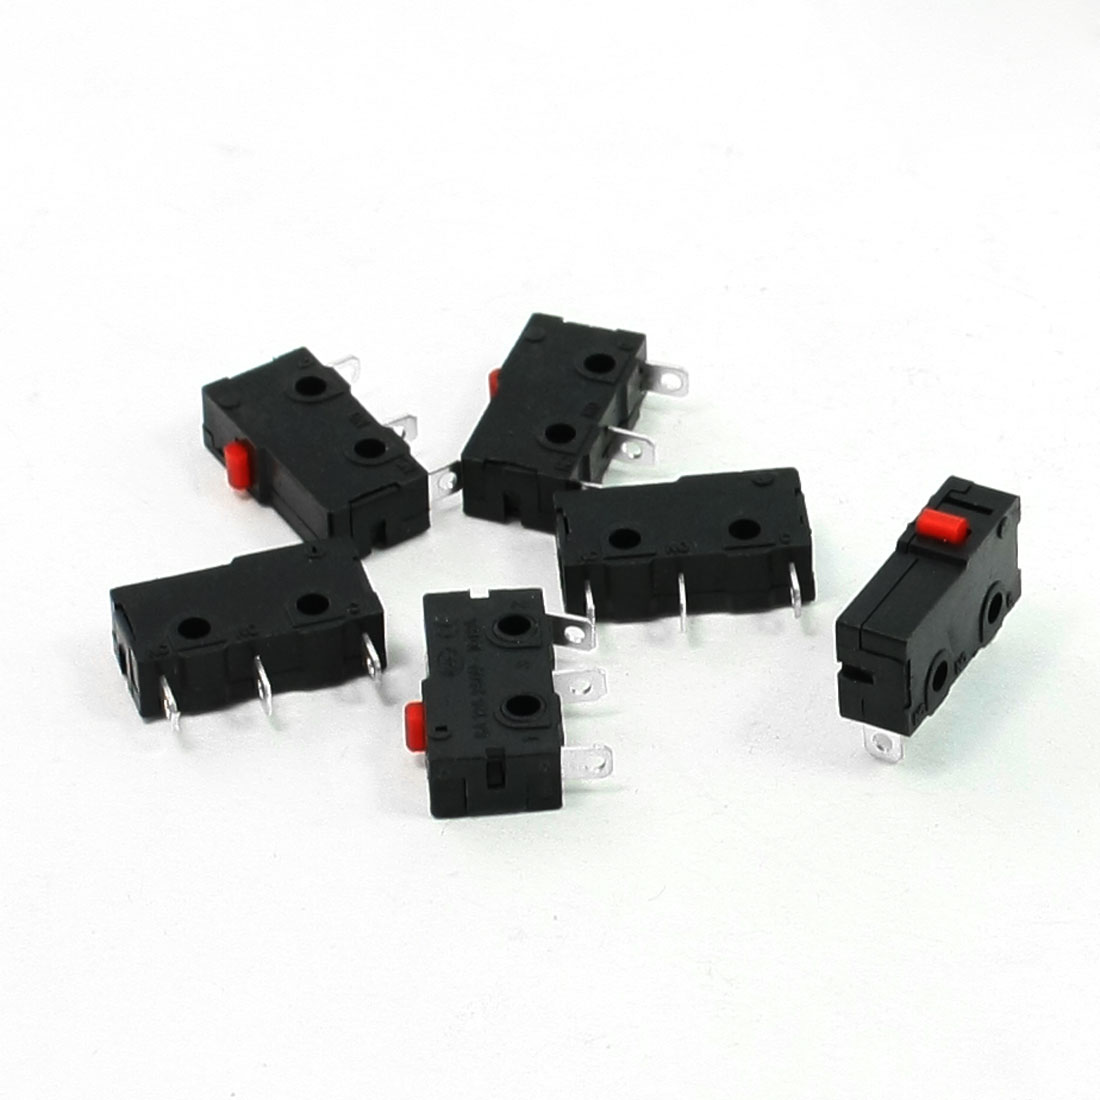 5 Pcs AC 125V 5A SPDT 3 Pins Red Push Button Actuator Miniature Micro Switch